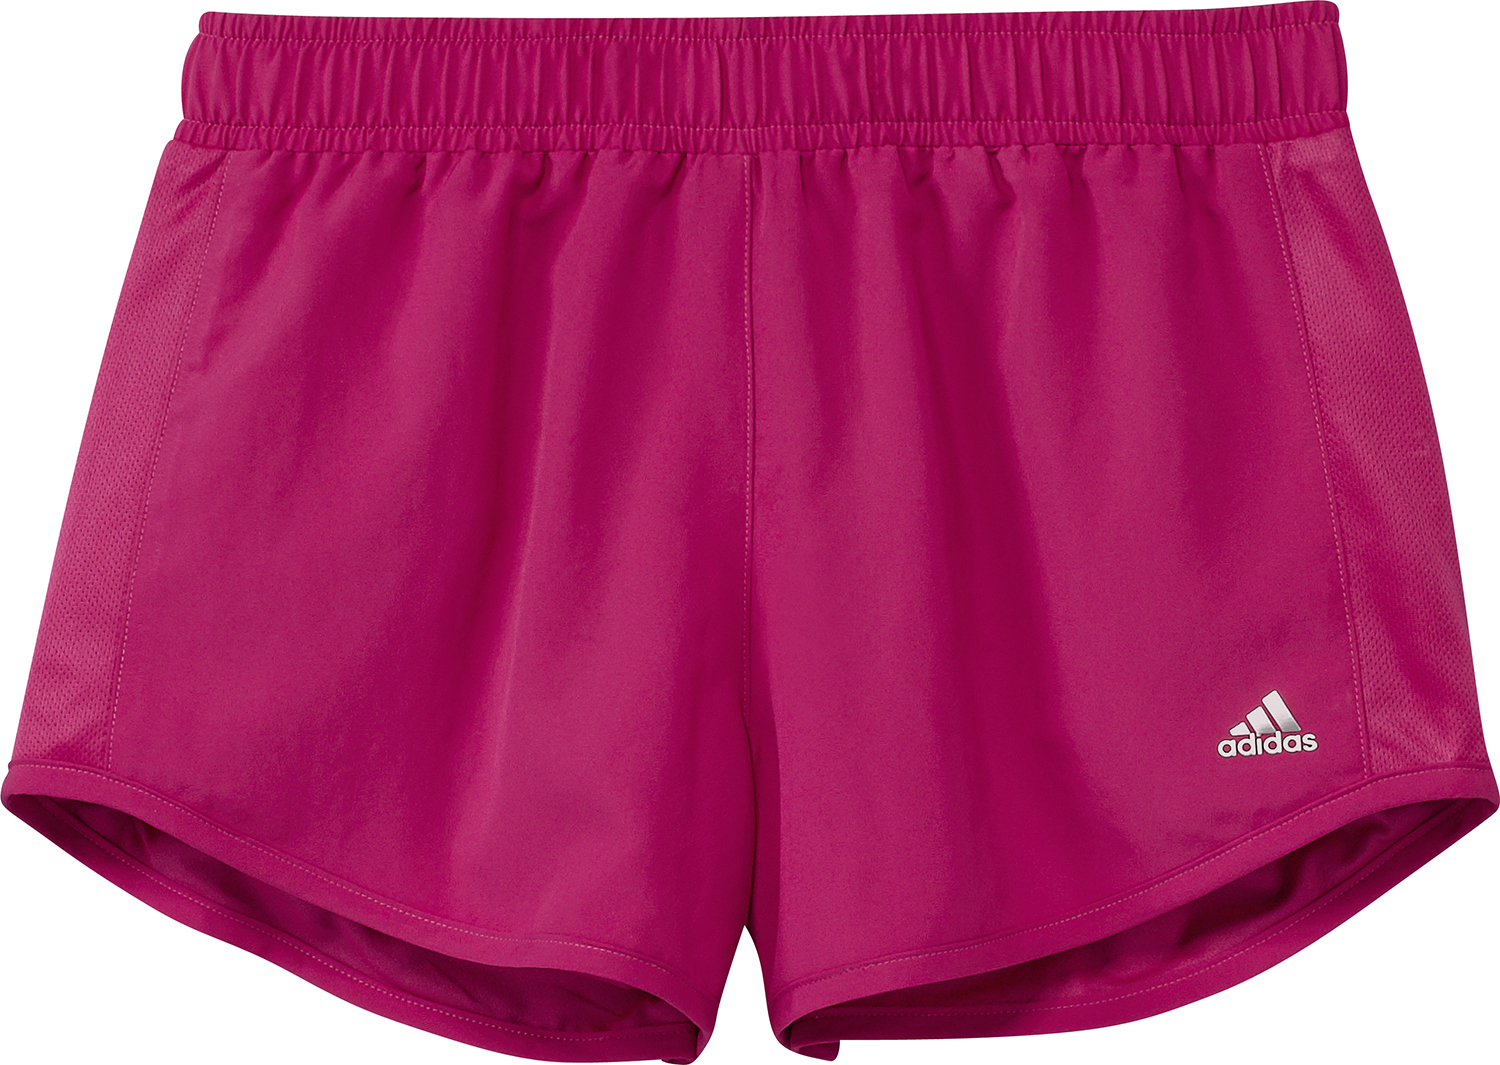 adidas shorts girls